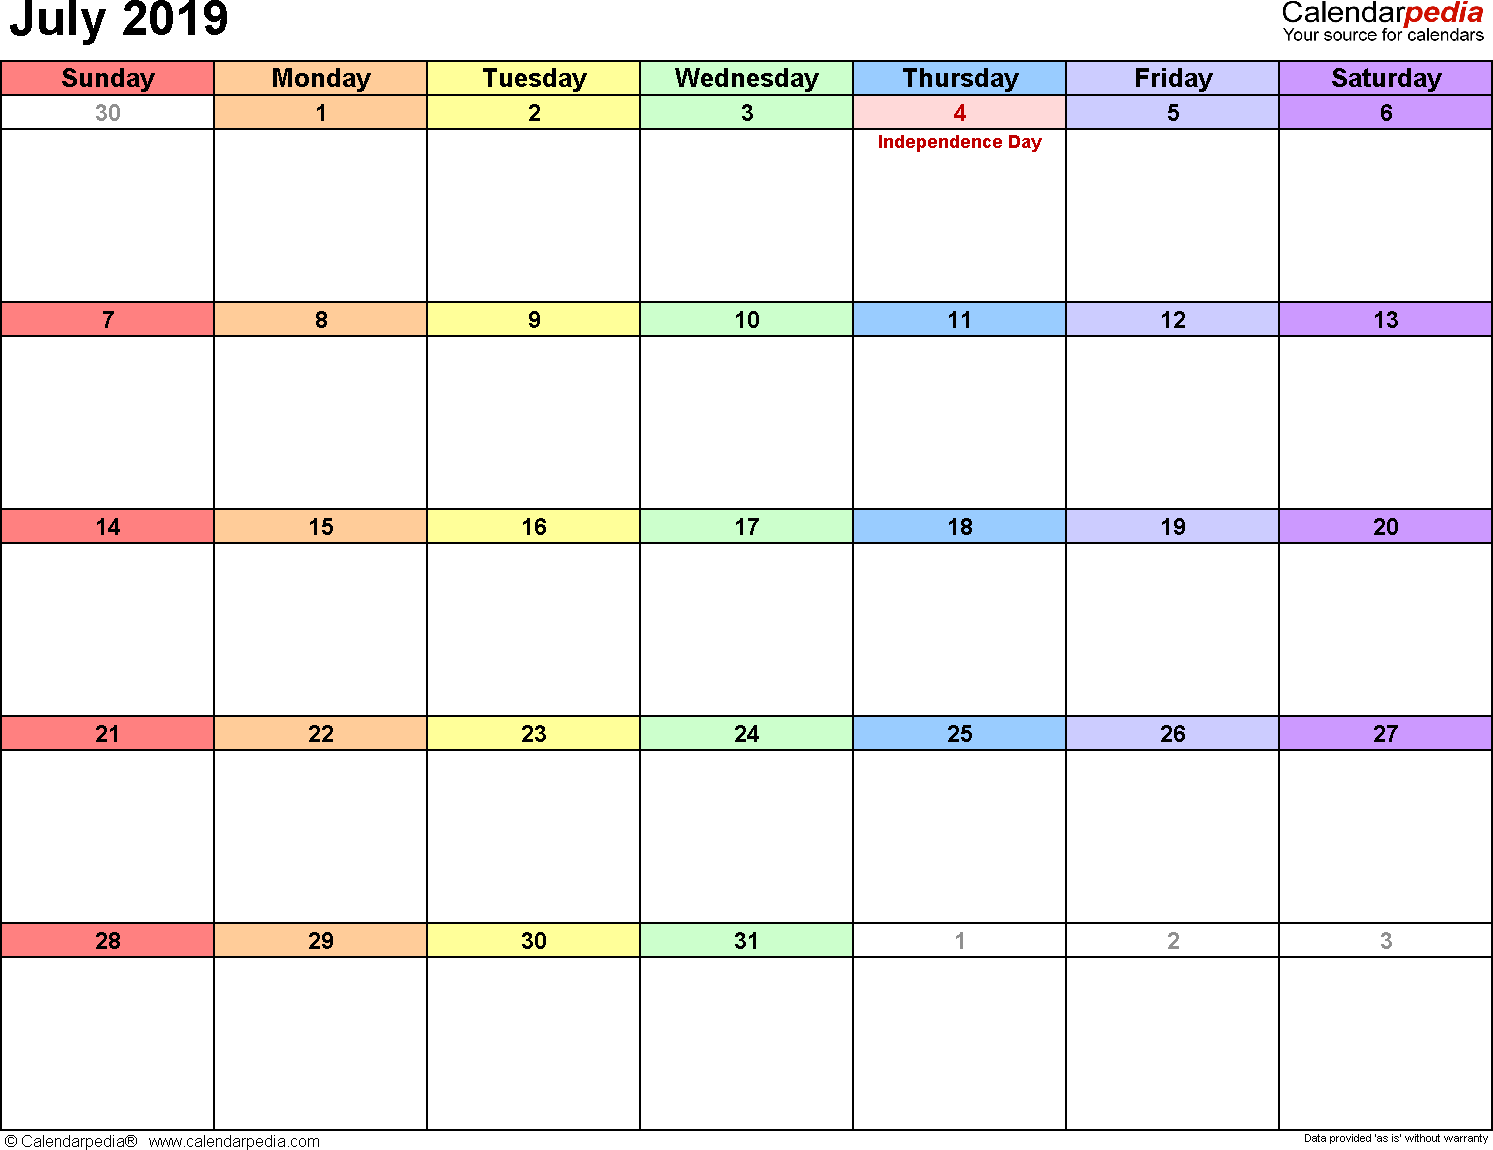 July 2019 calendar printable template